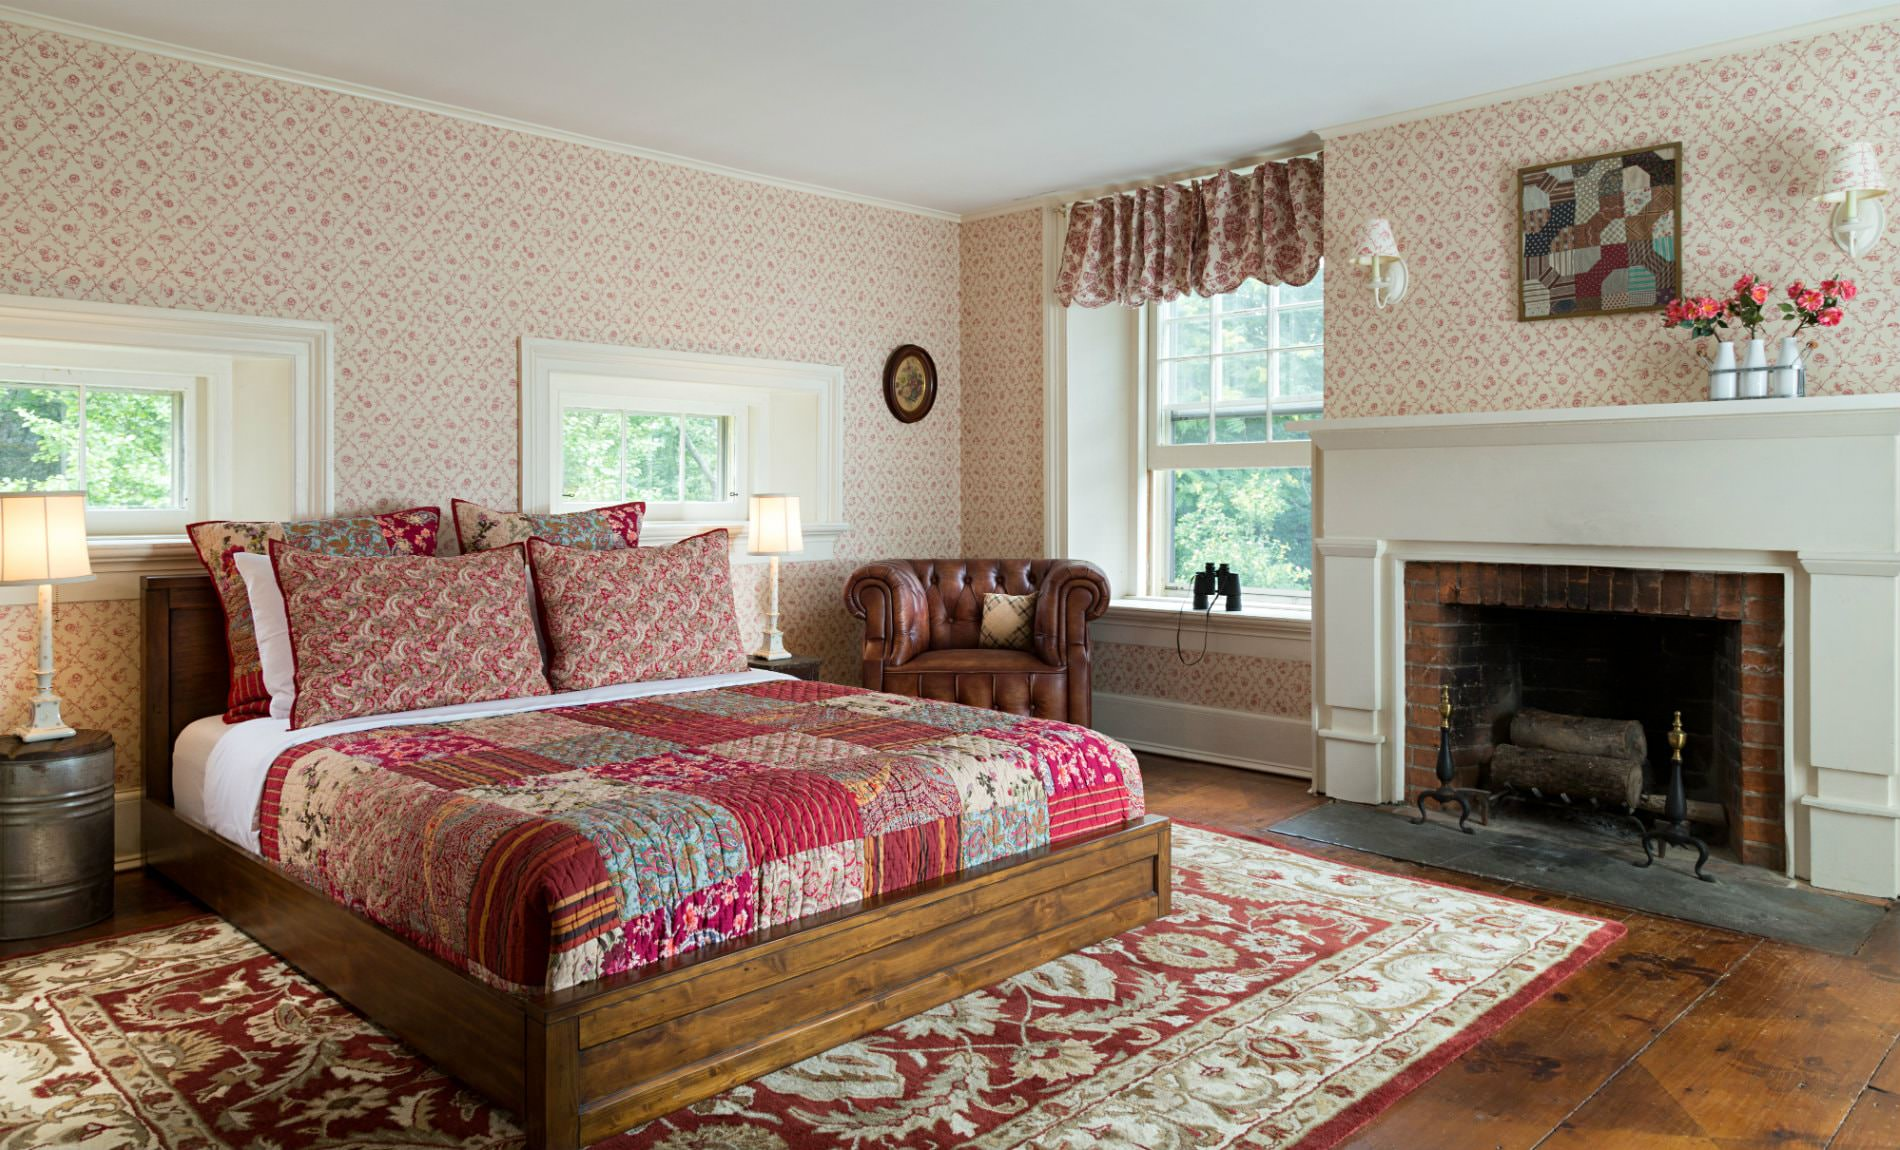 Spacious cozy room with warm wood floors, several windows, red floral quilted bed, fireplace and brown leather club chair